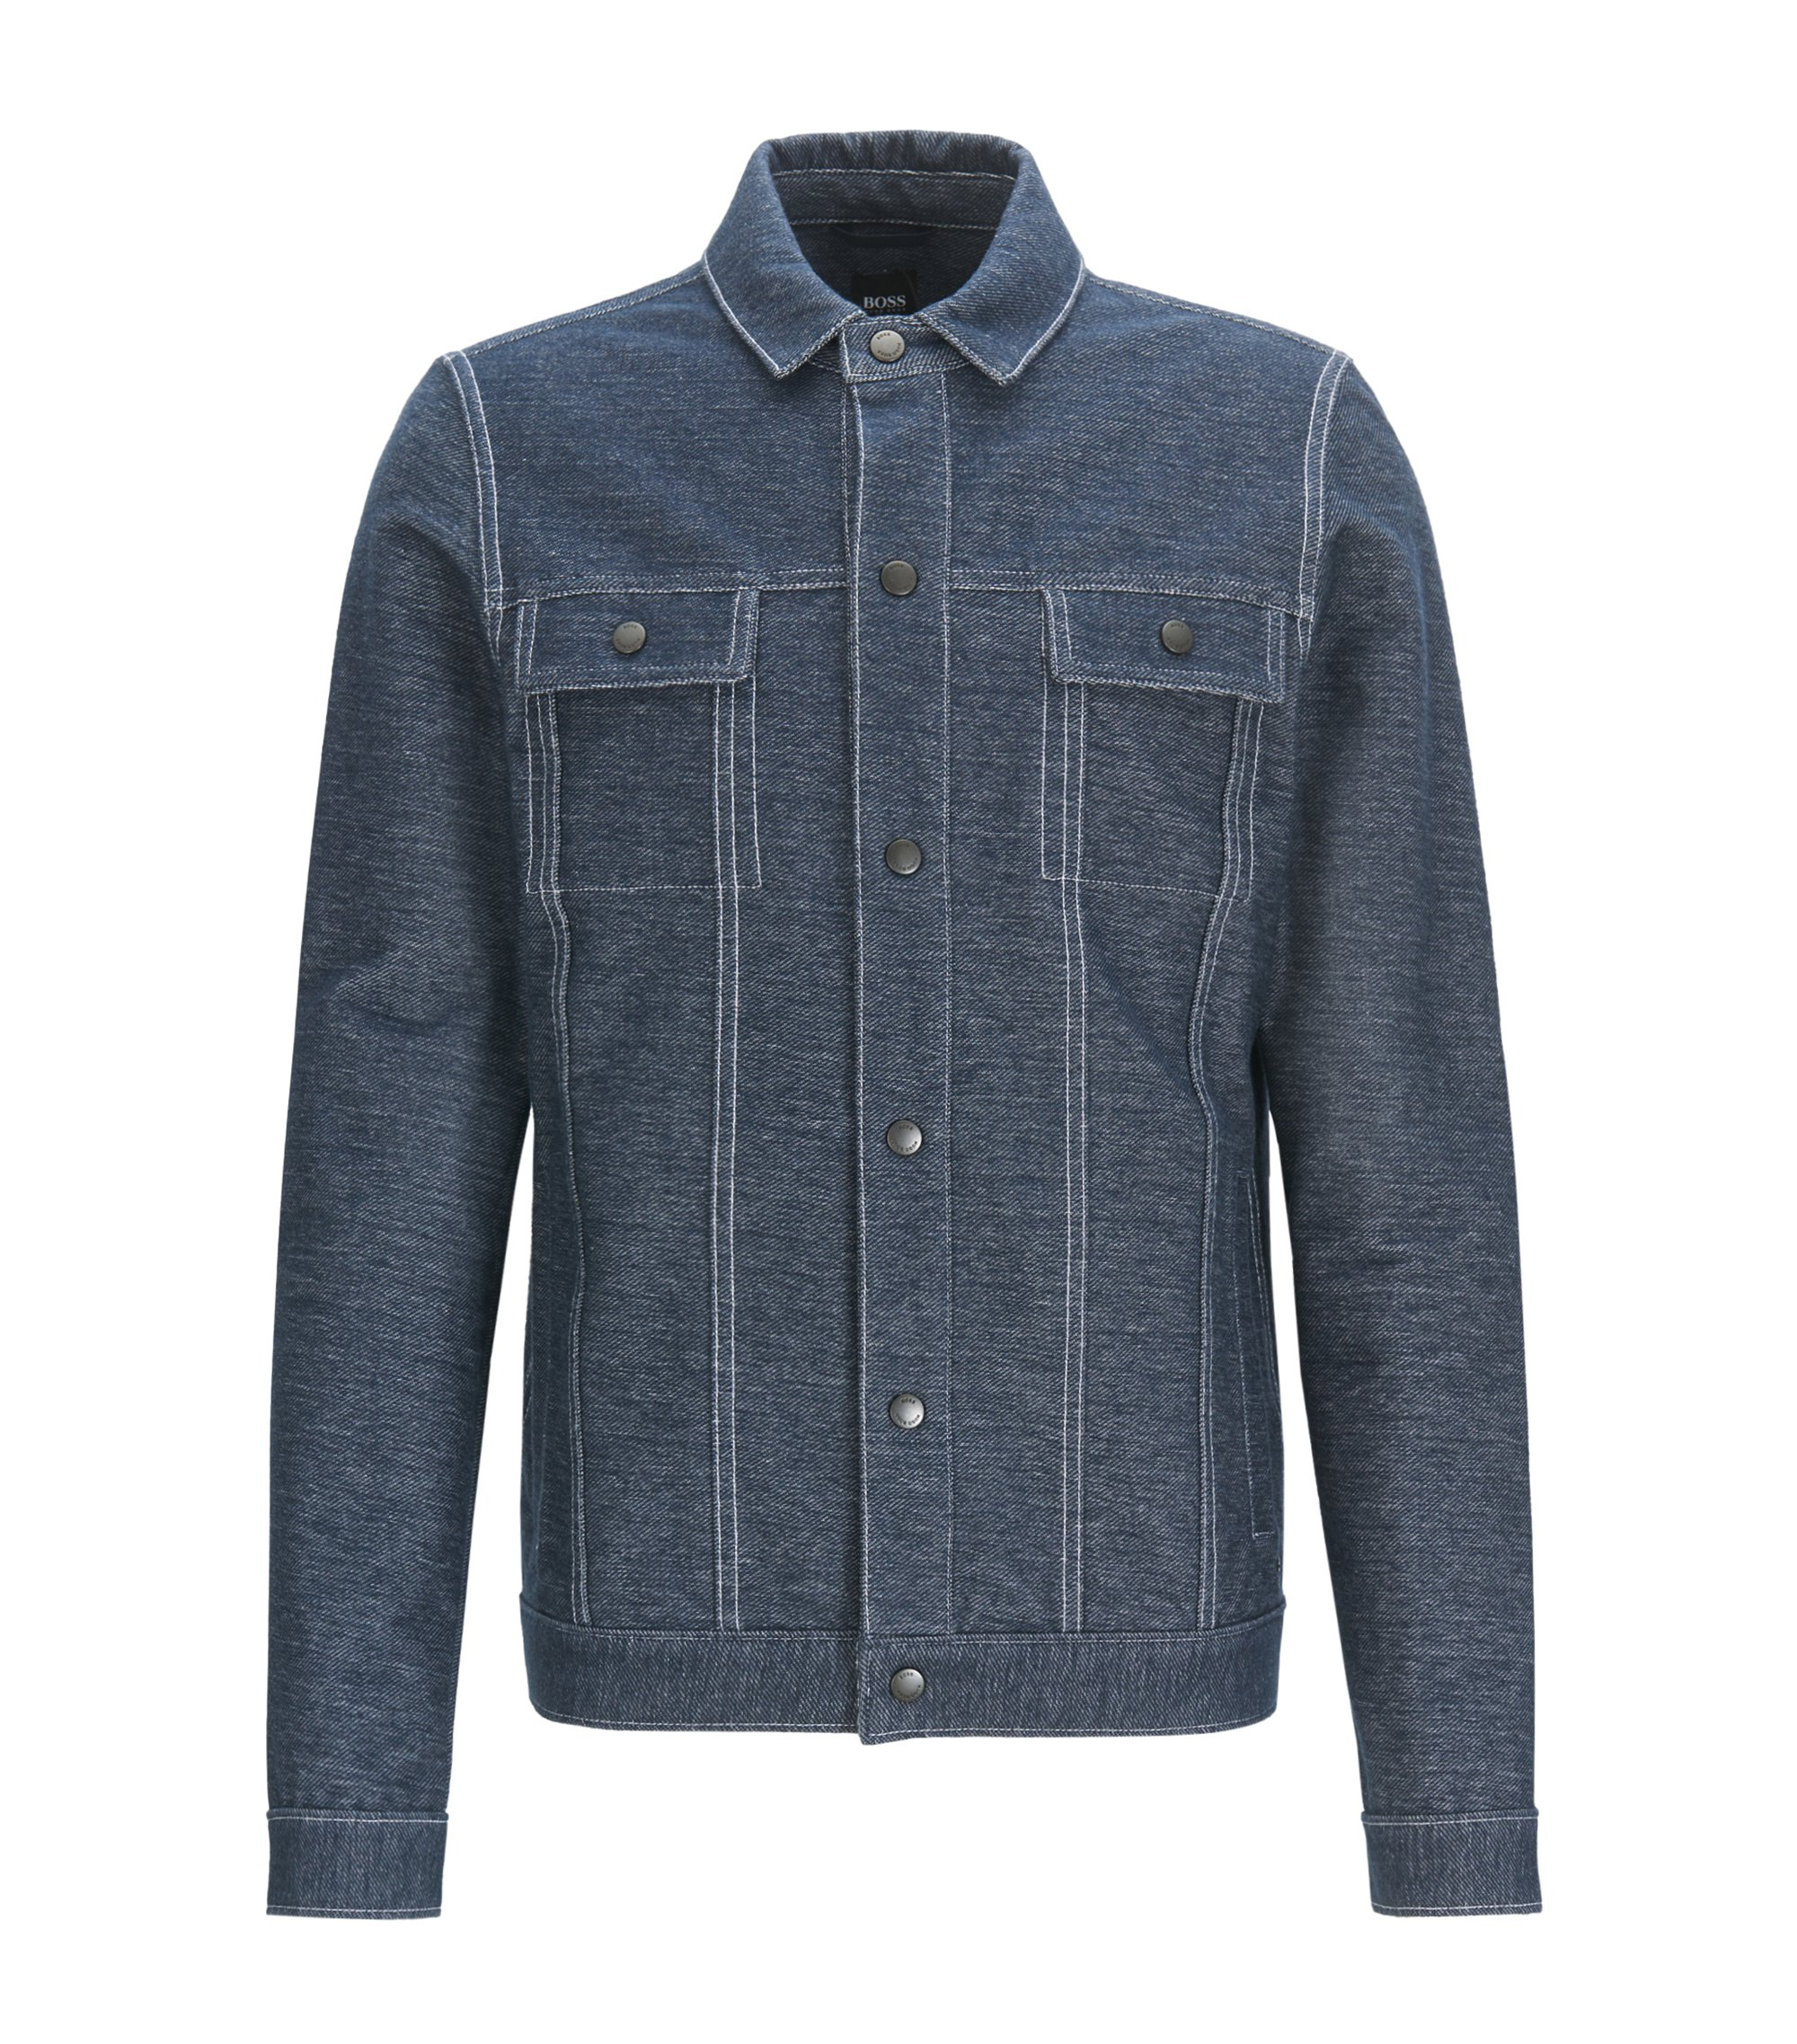 Regular-Fit Jacke aus Stretch-Baumwolle in Denim-Optik, Dunkelblau